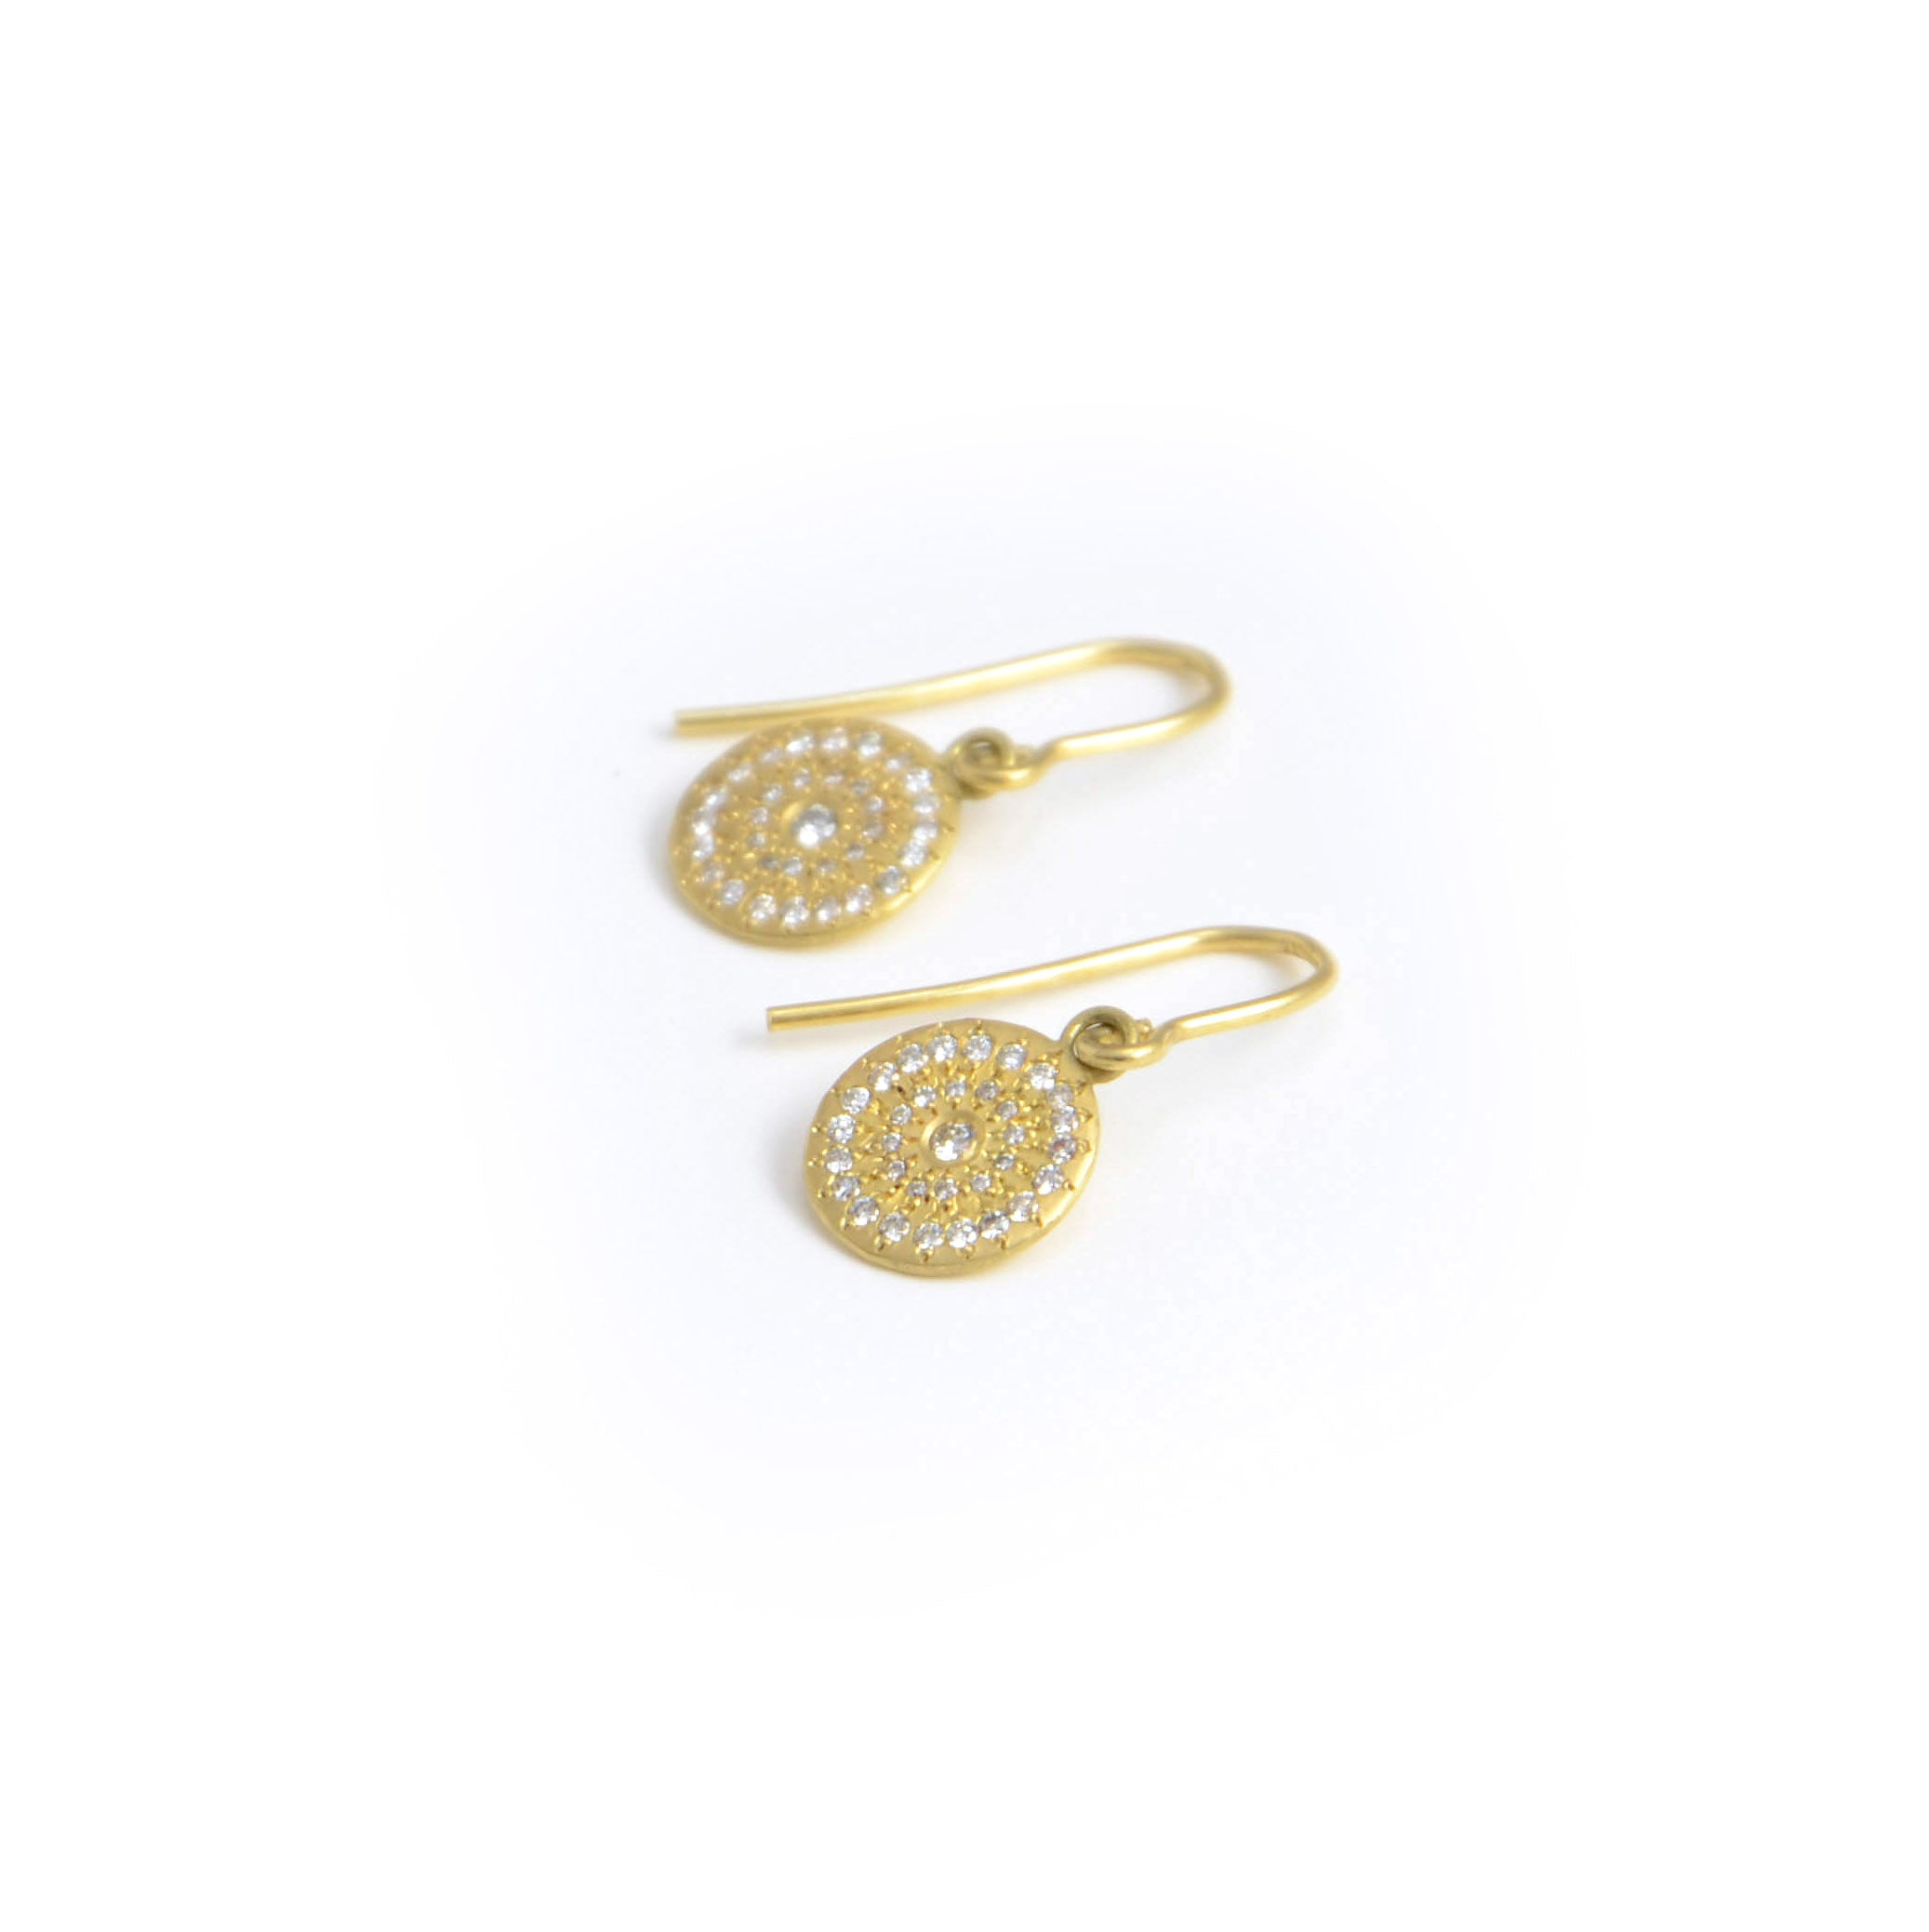 Adele Chefridi Earrings. Star Earrings with diamonds in concentric circular patterns. The 18 karat gold disks hang on wires.